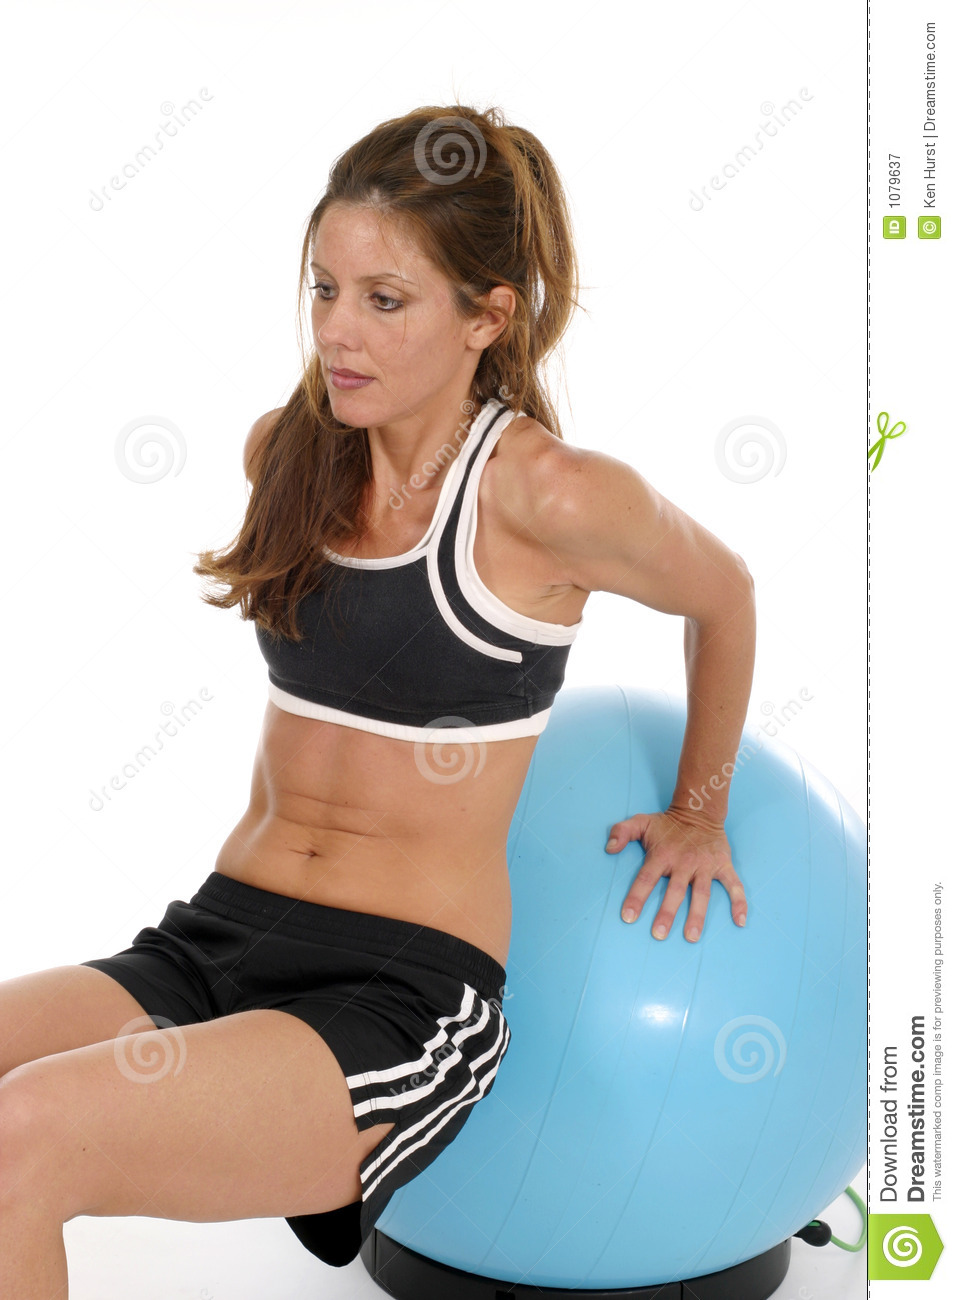 Woman Working Out On Exercise Ball 7 Stock Image